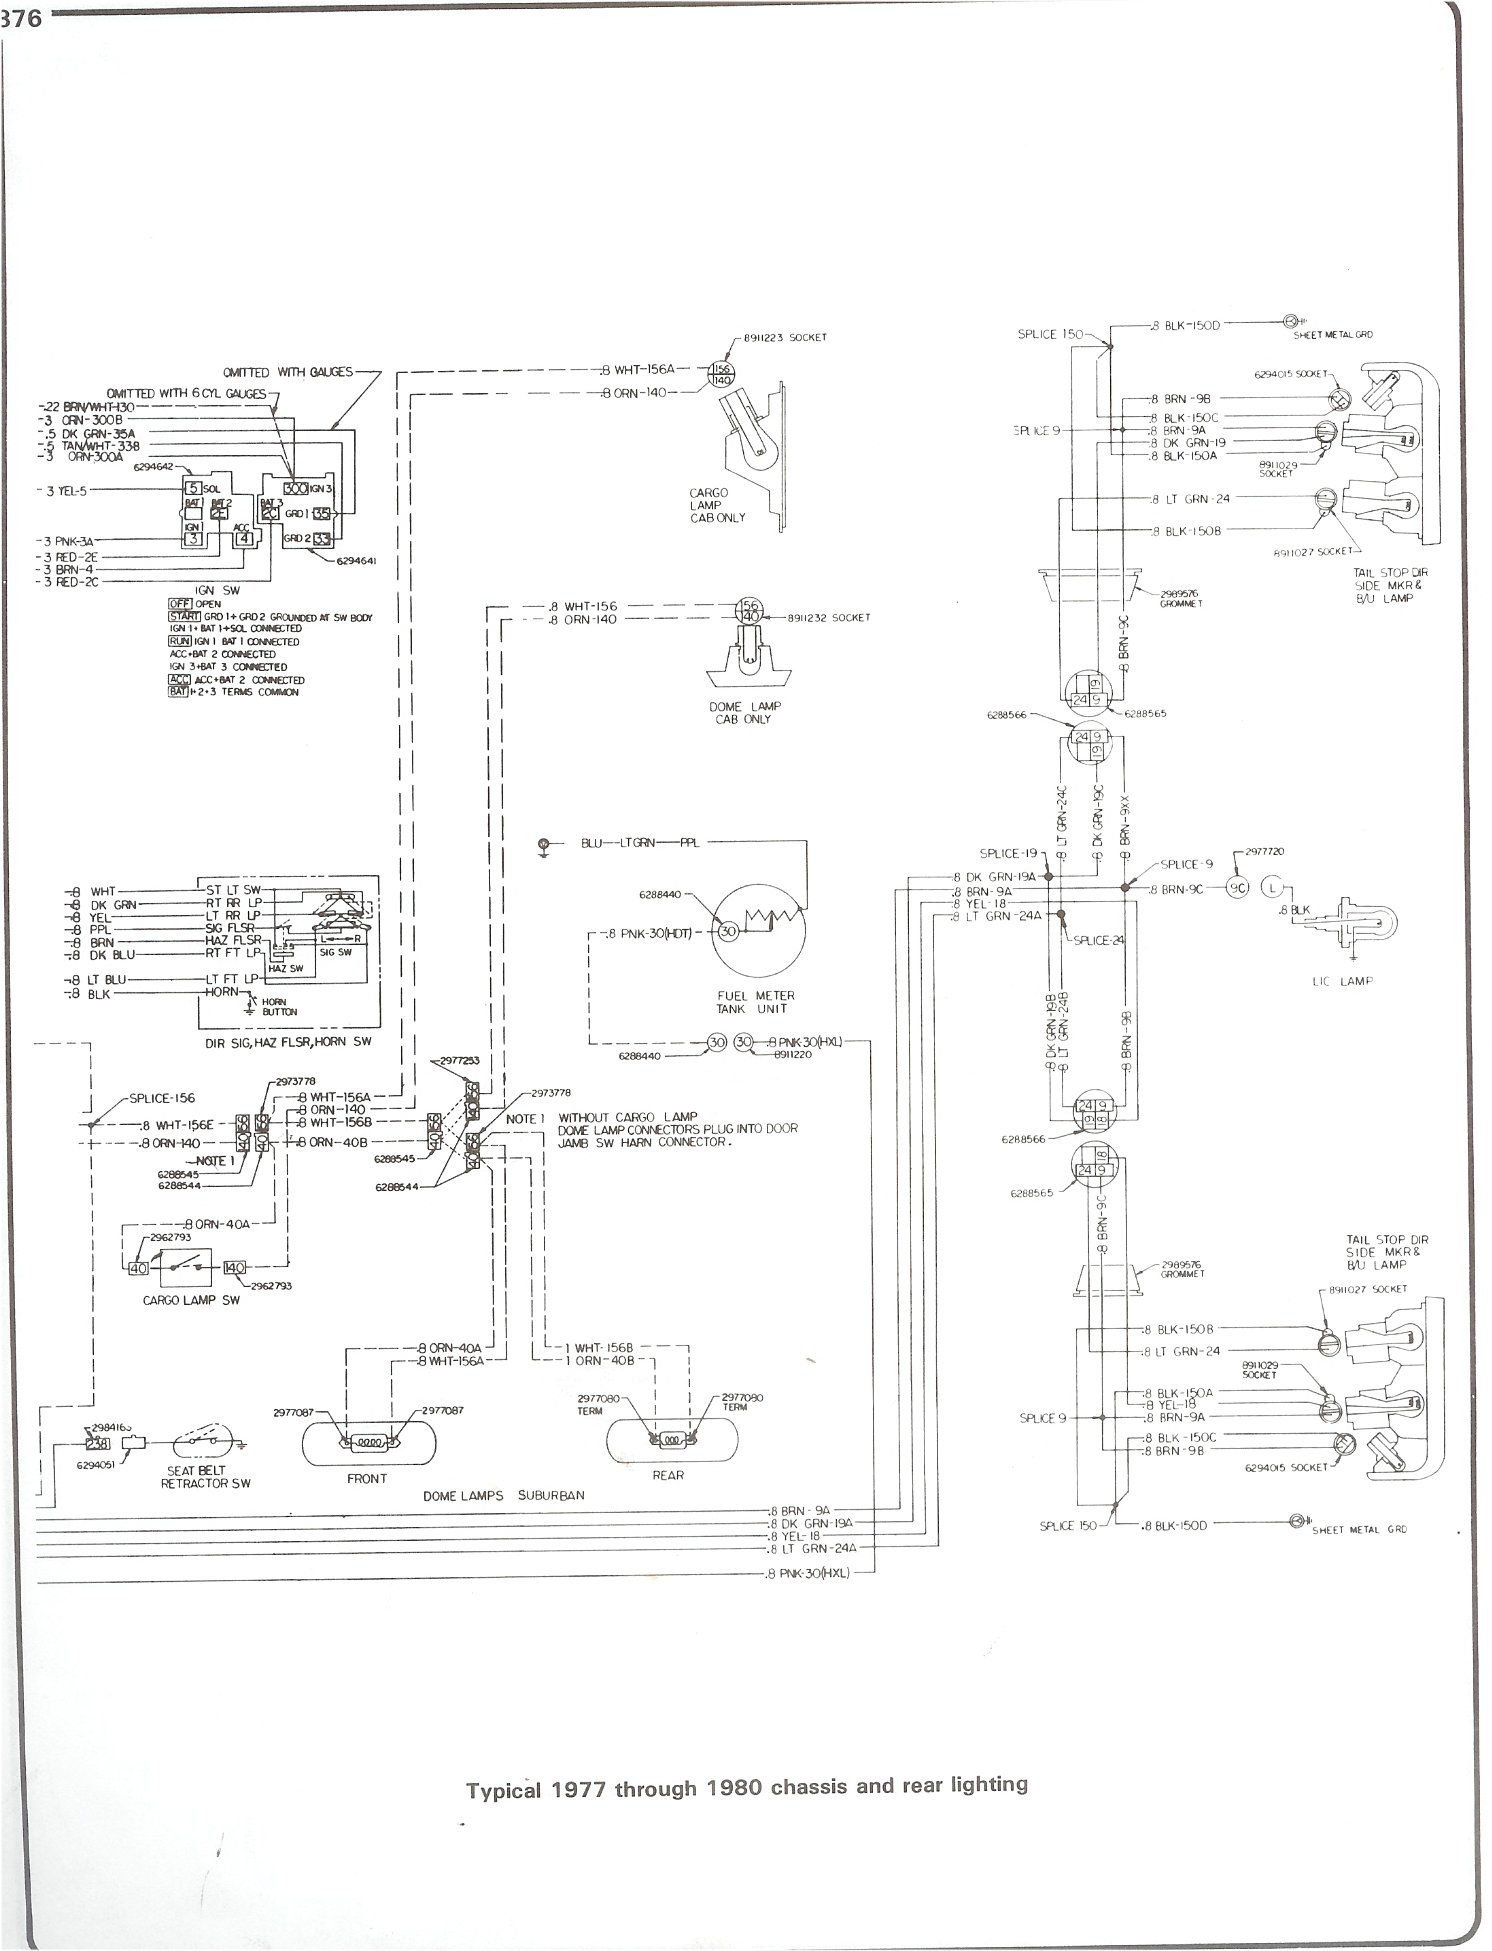 77 gmc wiring diagram 77 gmc wiring